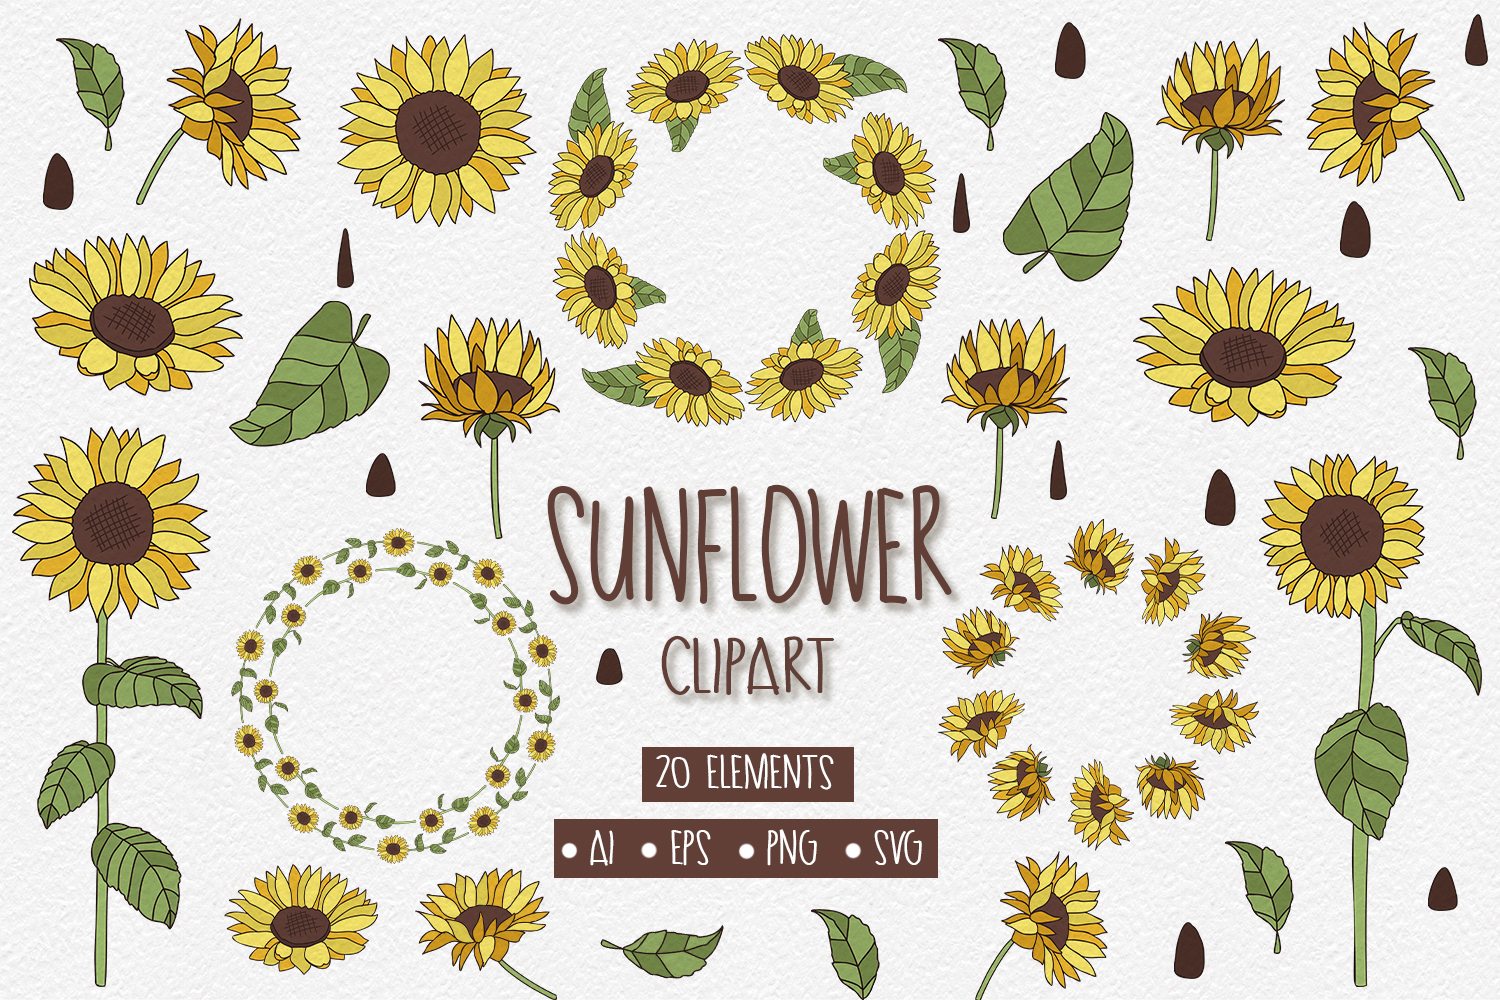 20 Sunflower Clipart Elements example image 1